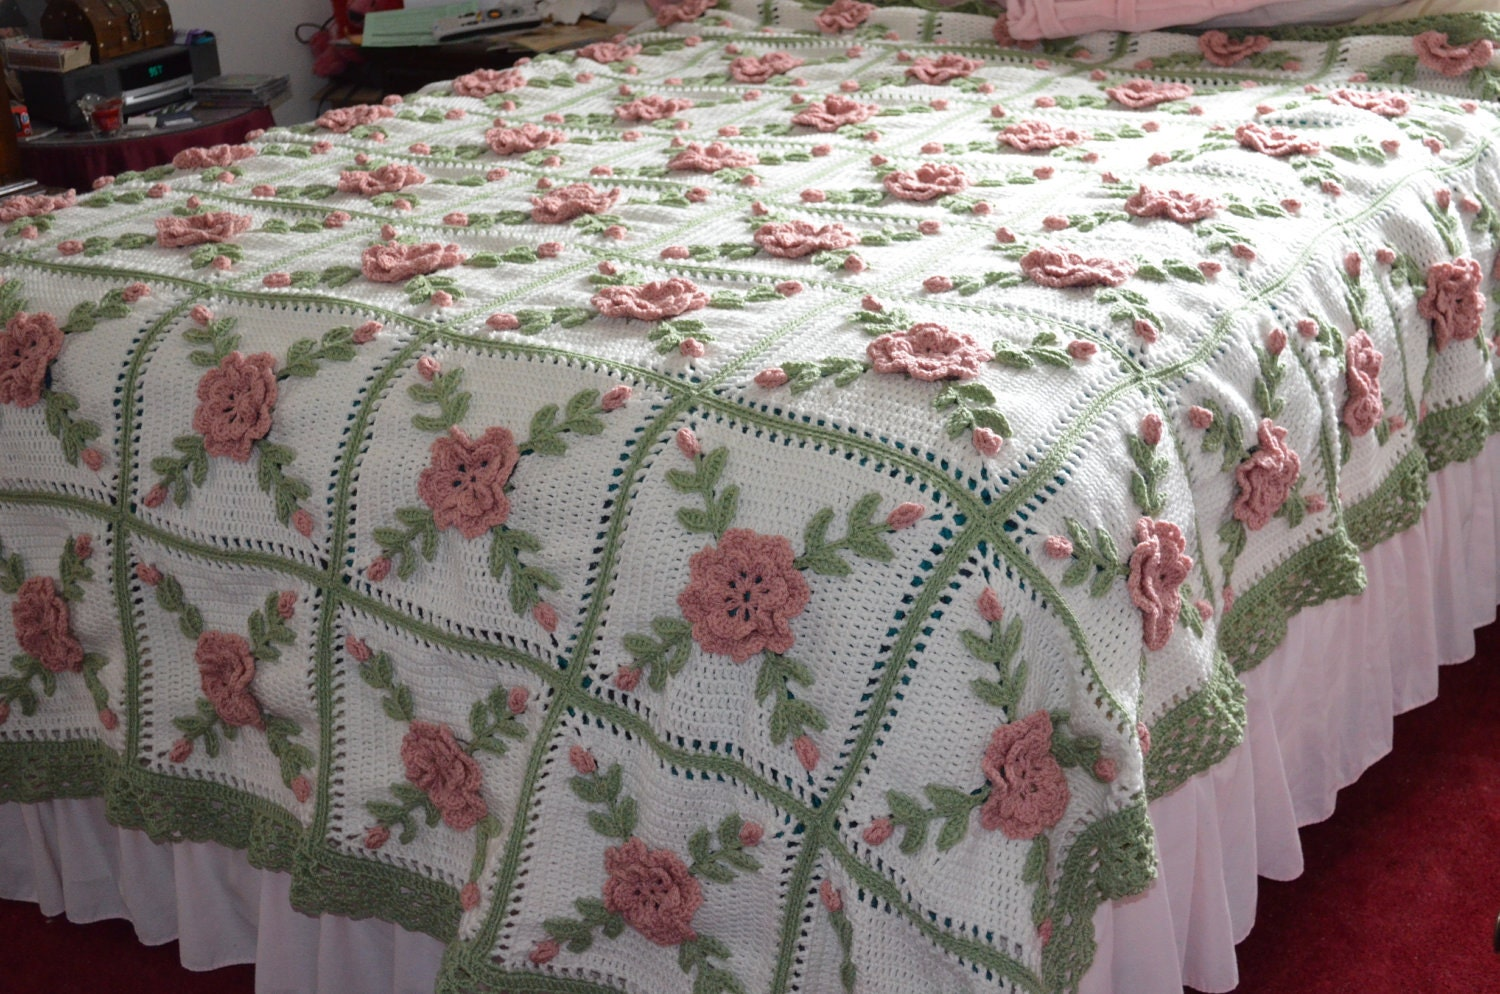 Floral Wild Rose Crocheted Afghan King Size Made by sherryann325